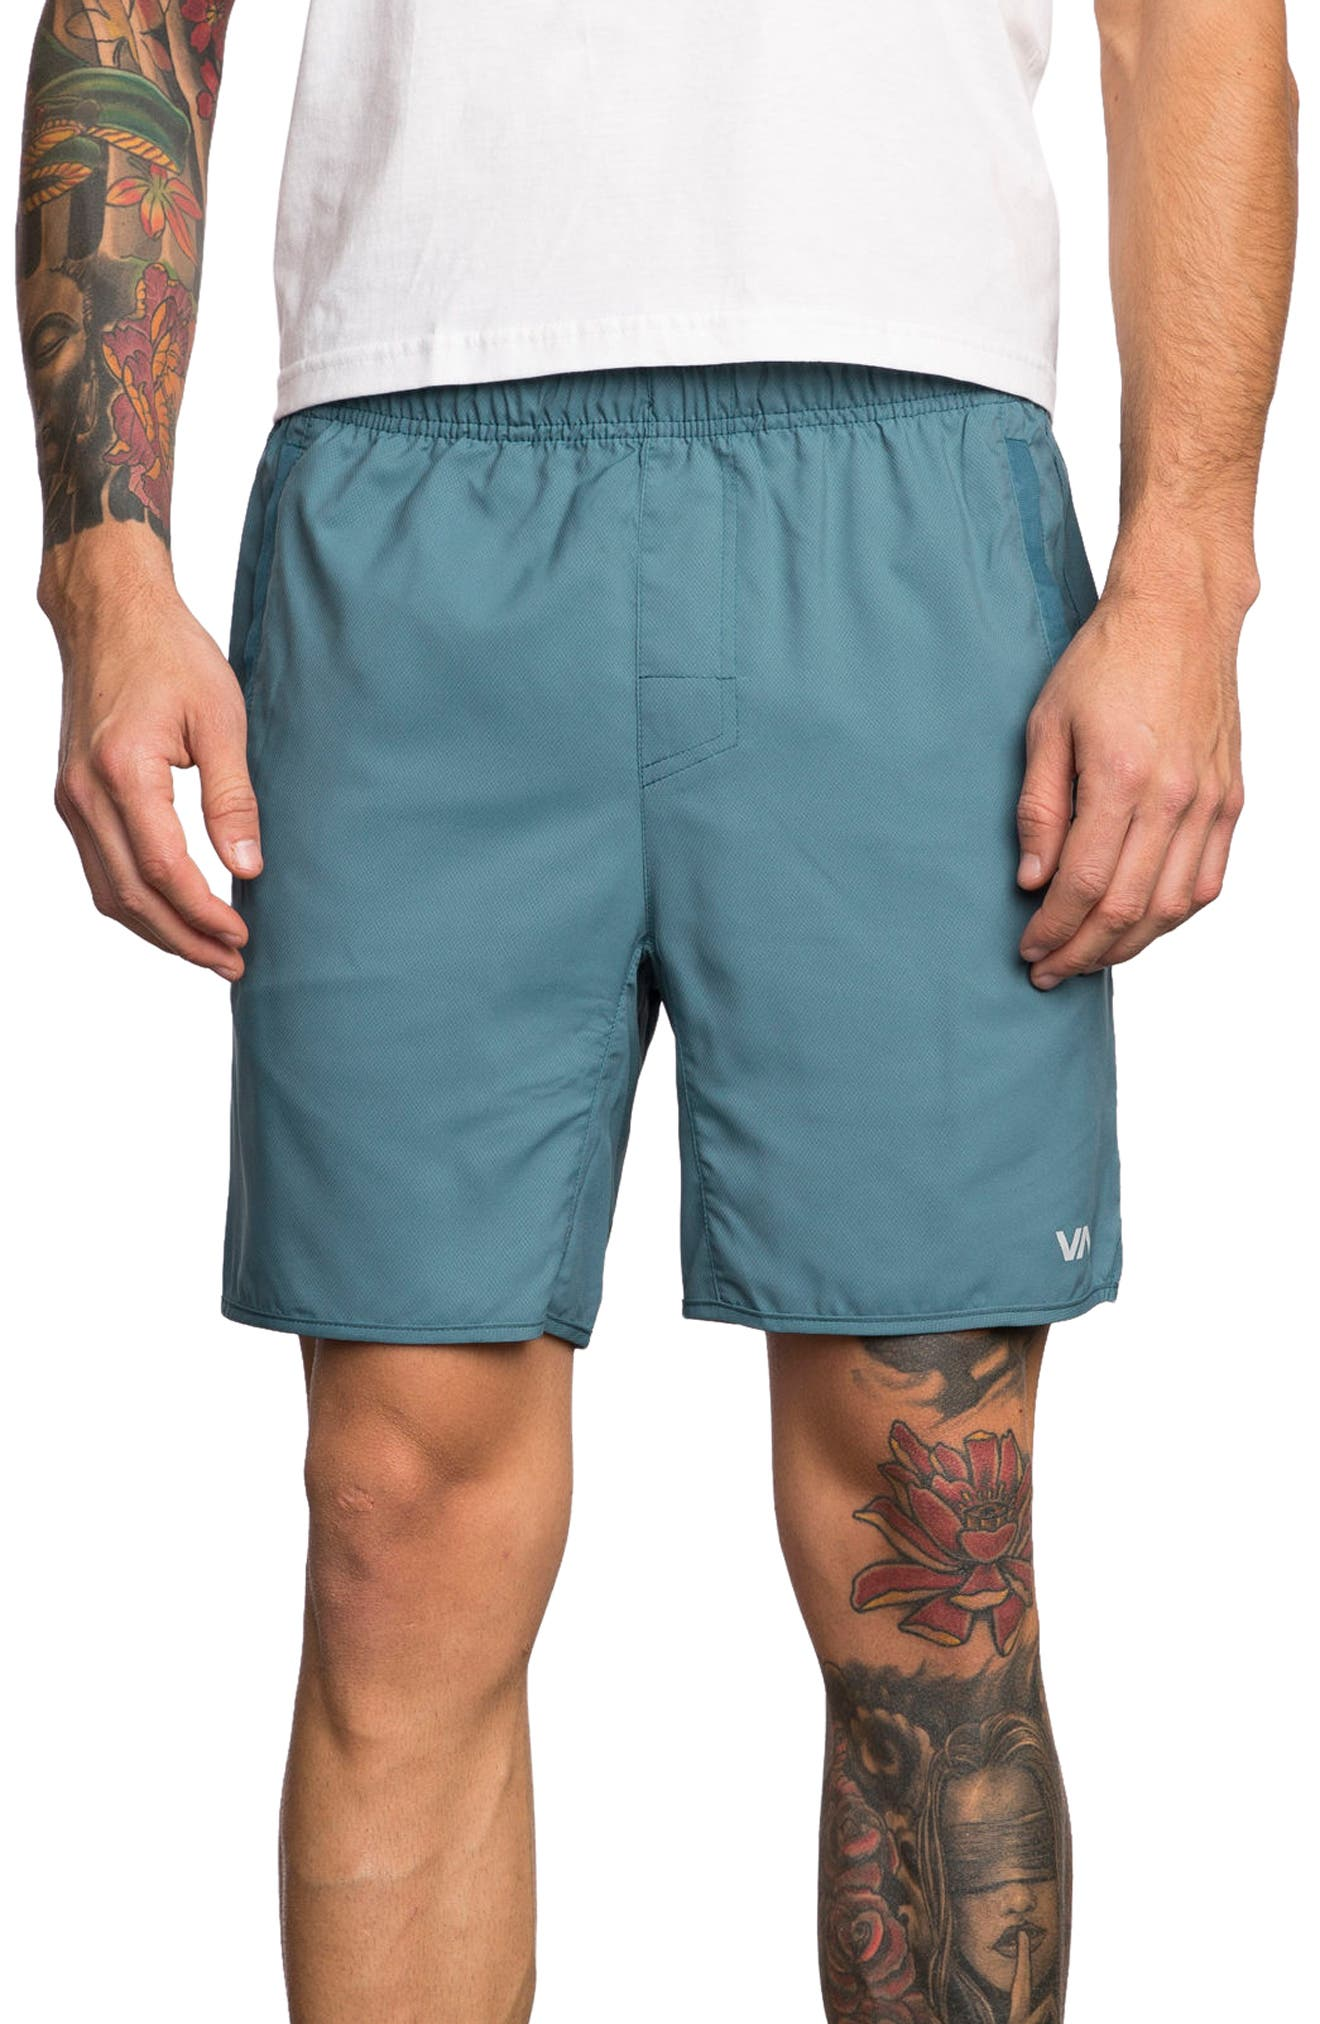 Alternate Image 1 Selected - RVCA Yogger III Athletic Shorts